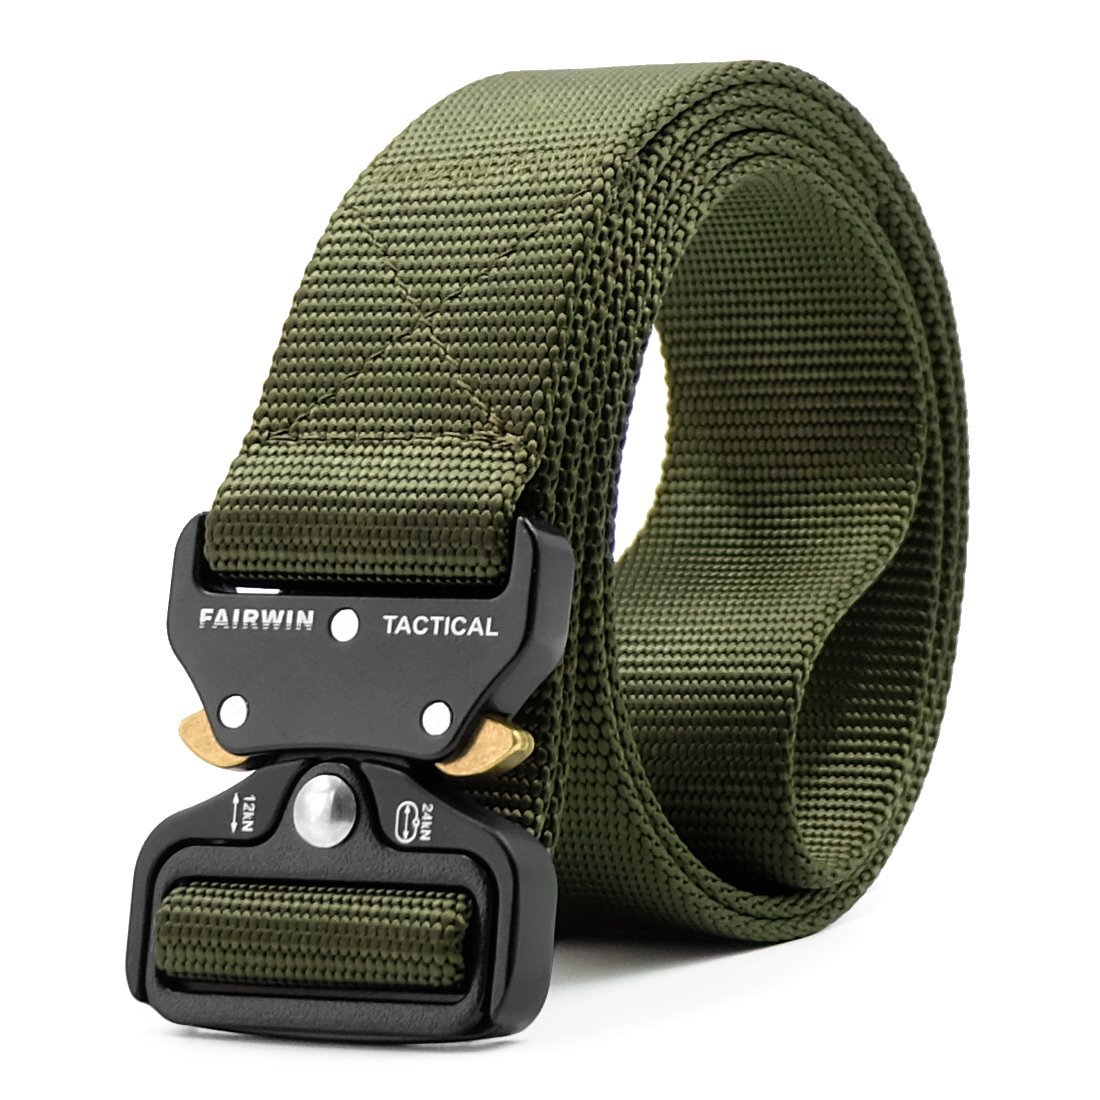 Fairwin Tactical Belt, Military Style Webbing Riggers Web Belt with Heavy-Duty Quick-Release Metal Buckle (Green, M 36''-42'')